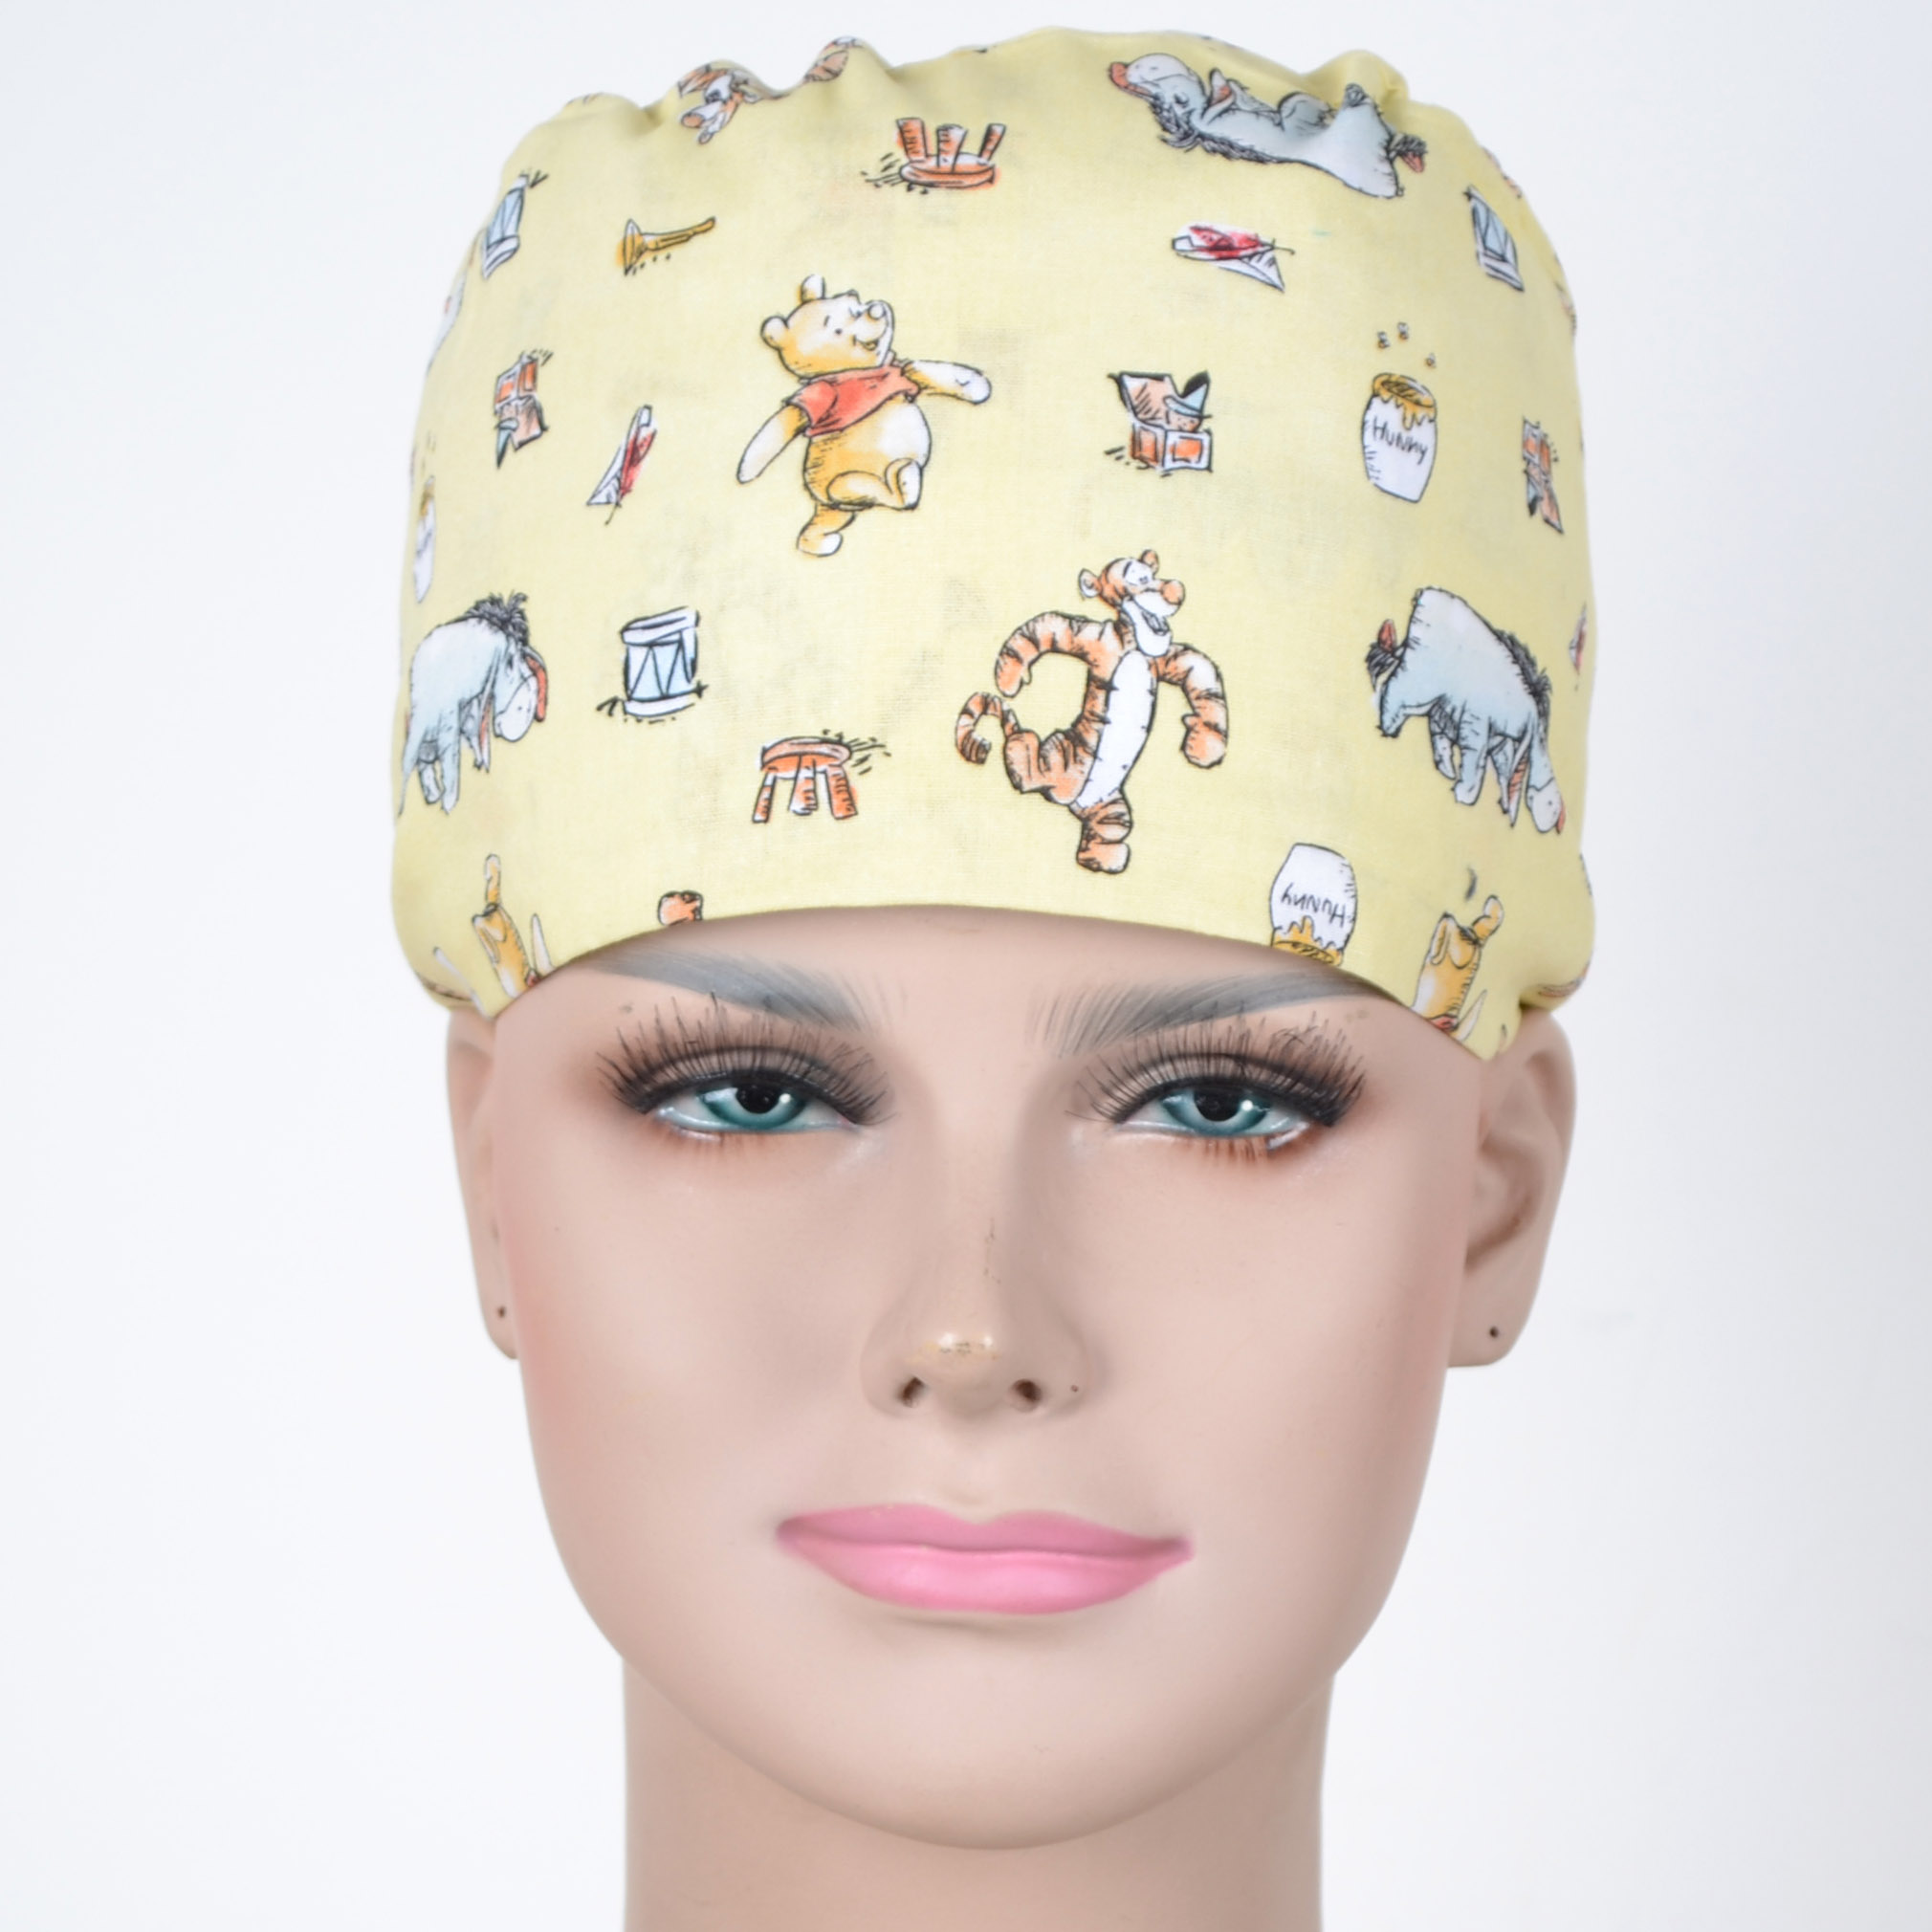 Hennar Wome Cotton Scrub Caps In Yellow With Bear Prints 100% Cotton  Hospital Medical Hats Print  Unisex Surgical Caps Mask